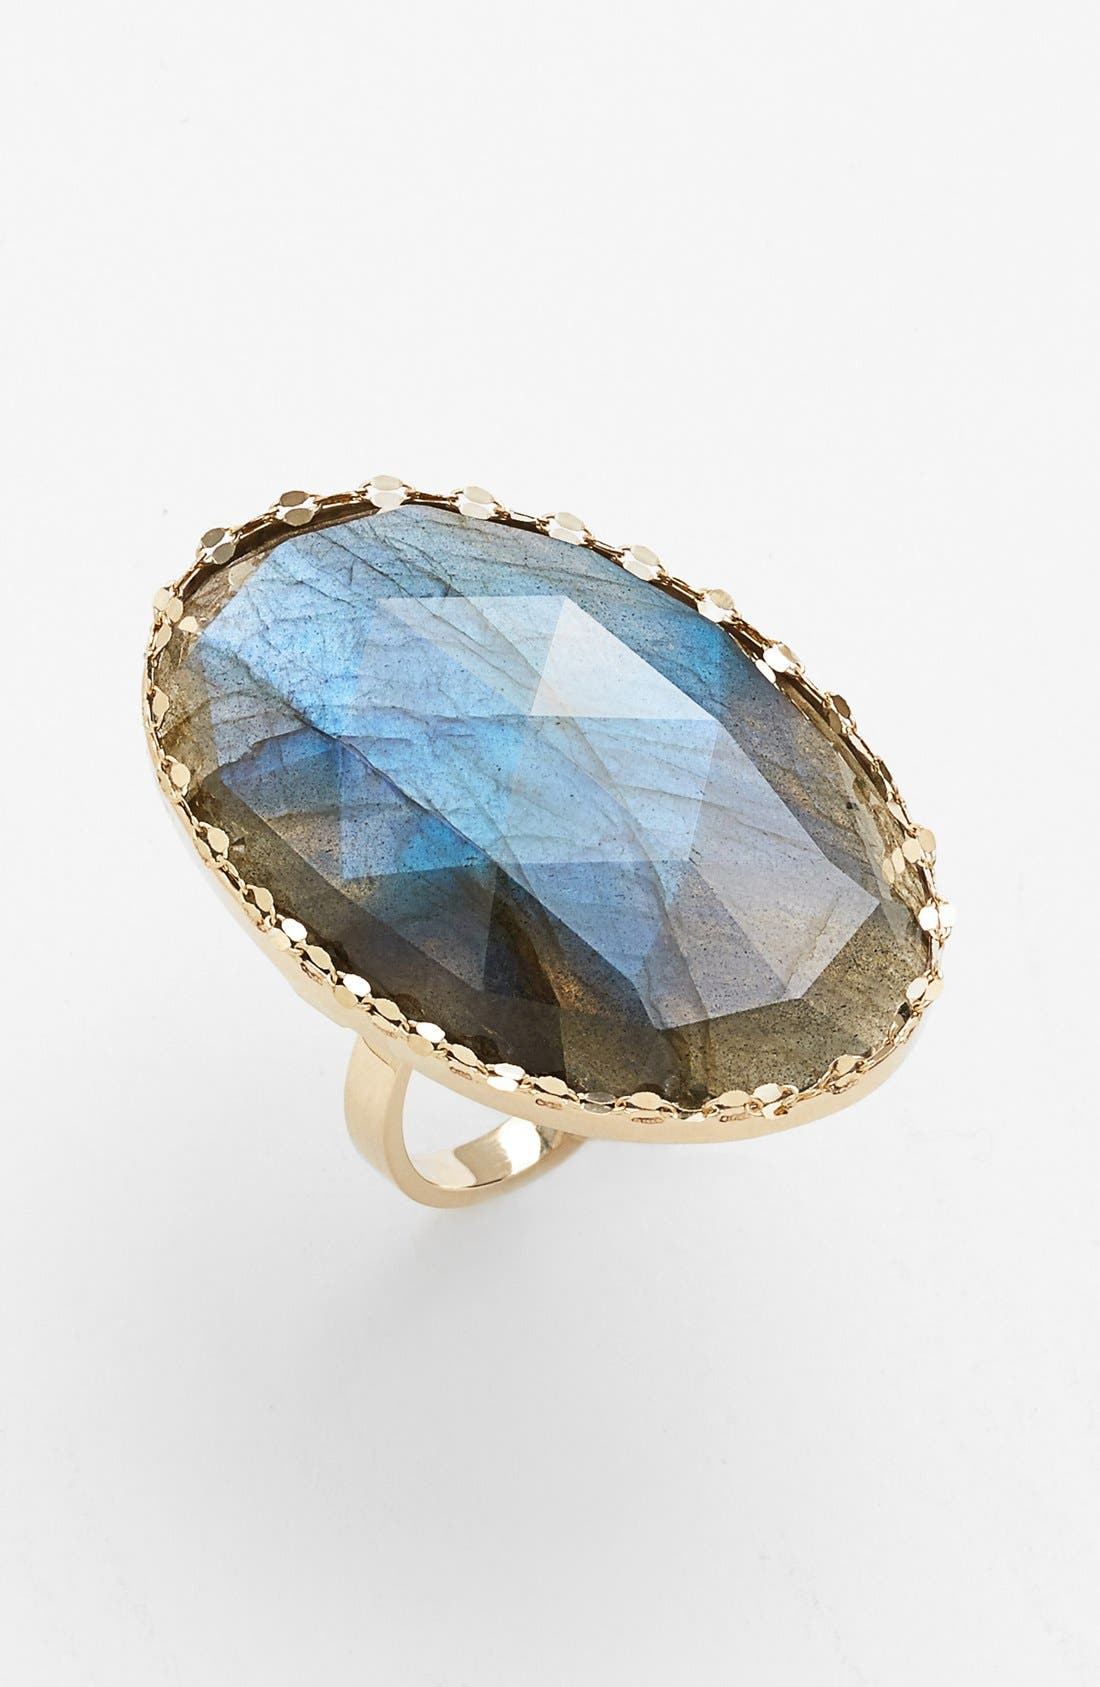 Alternate Image 1 Selected - Lana Jewelry 'Ultra' Large Labradorite Ring